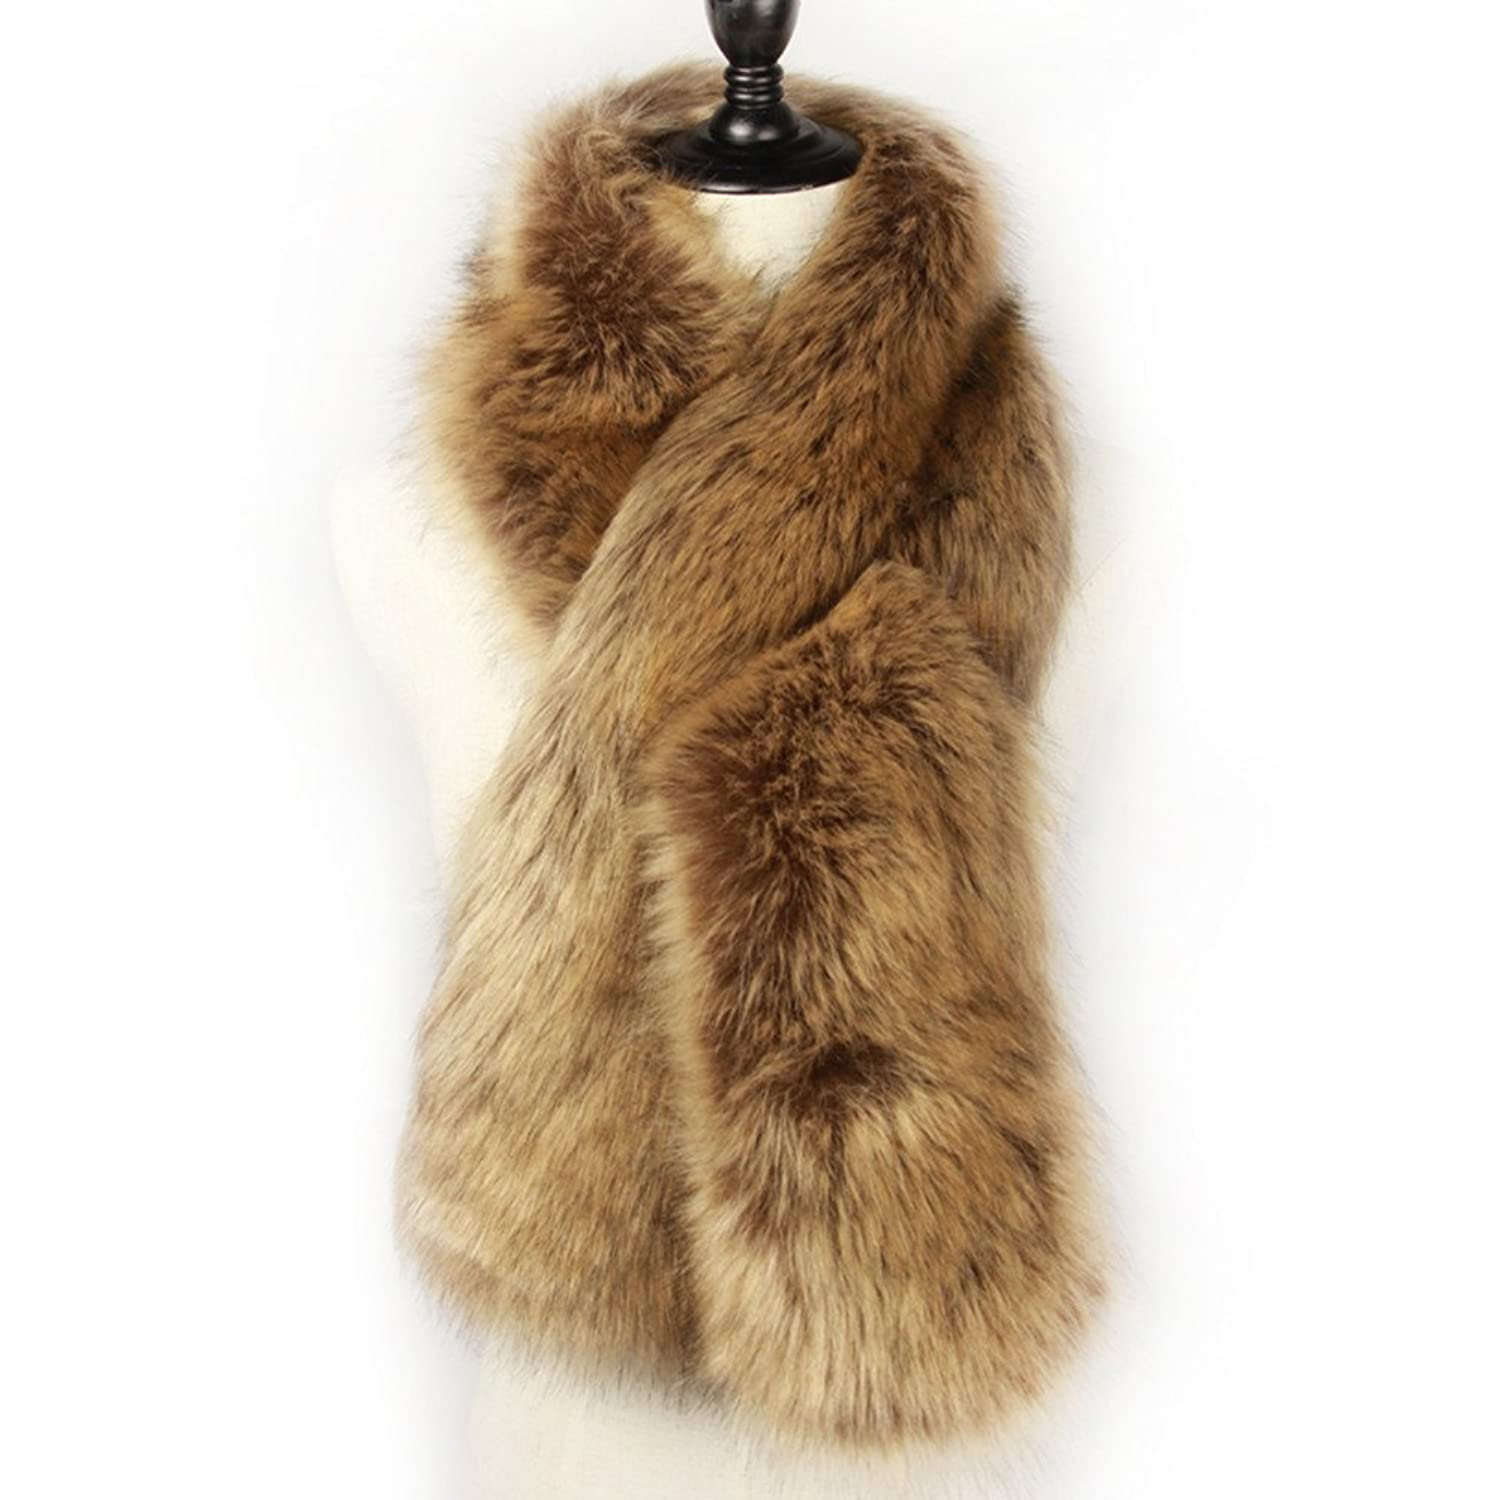 1930s Style Coats, Jackets | Art Deco Outerwear  Faux Fur Scarf Wrap Collar Shawl Shrug $15.99 AT vintagedancer.com